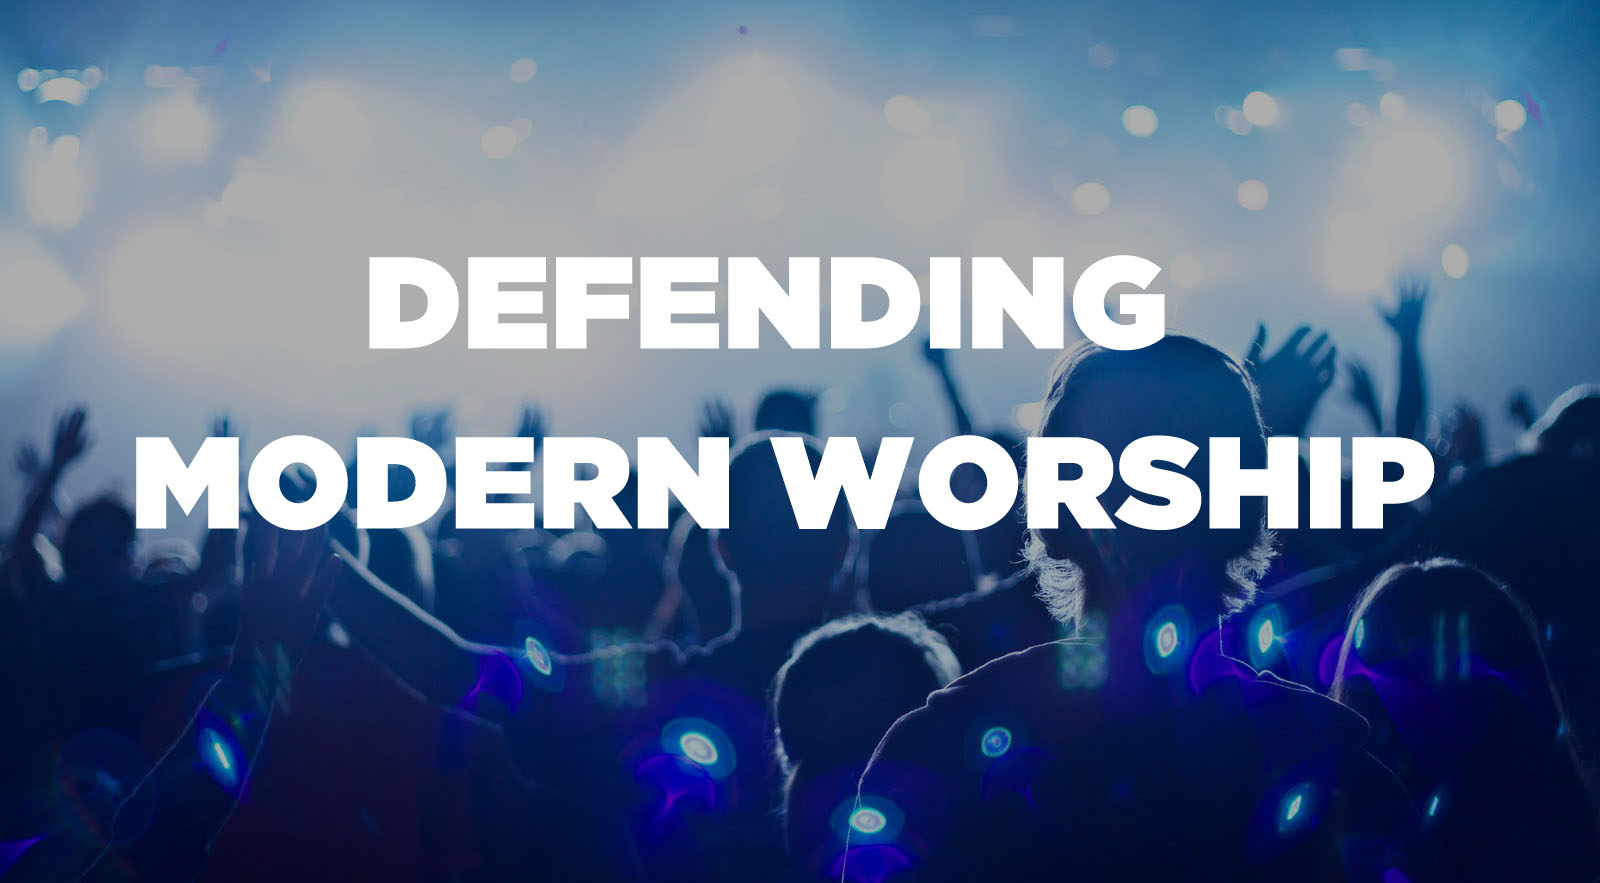 Defending Modern Worship | Forward Leadership